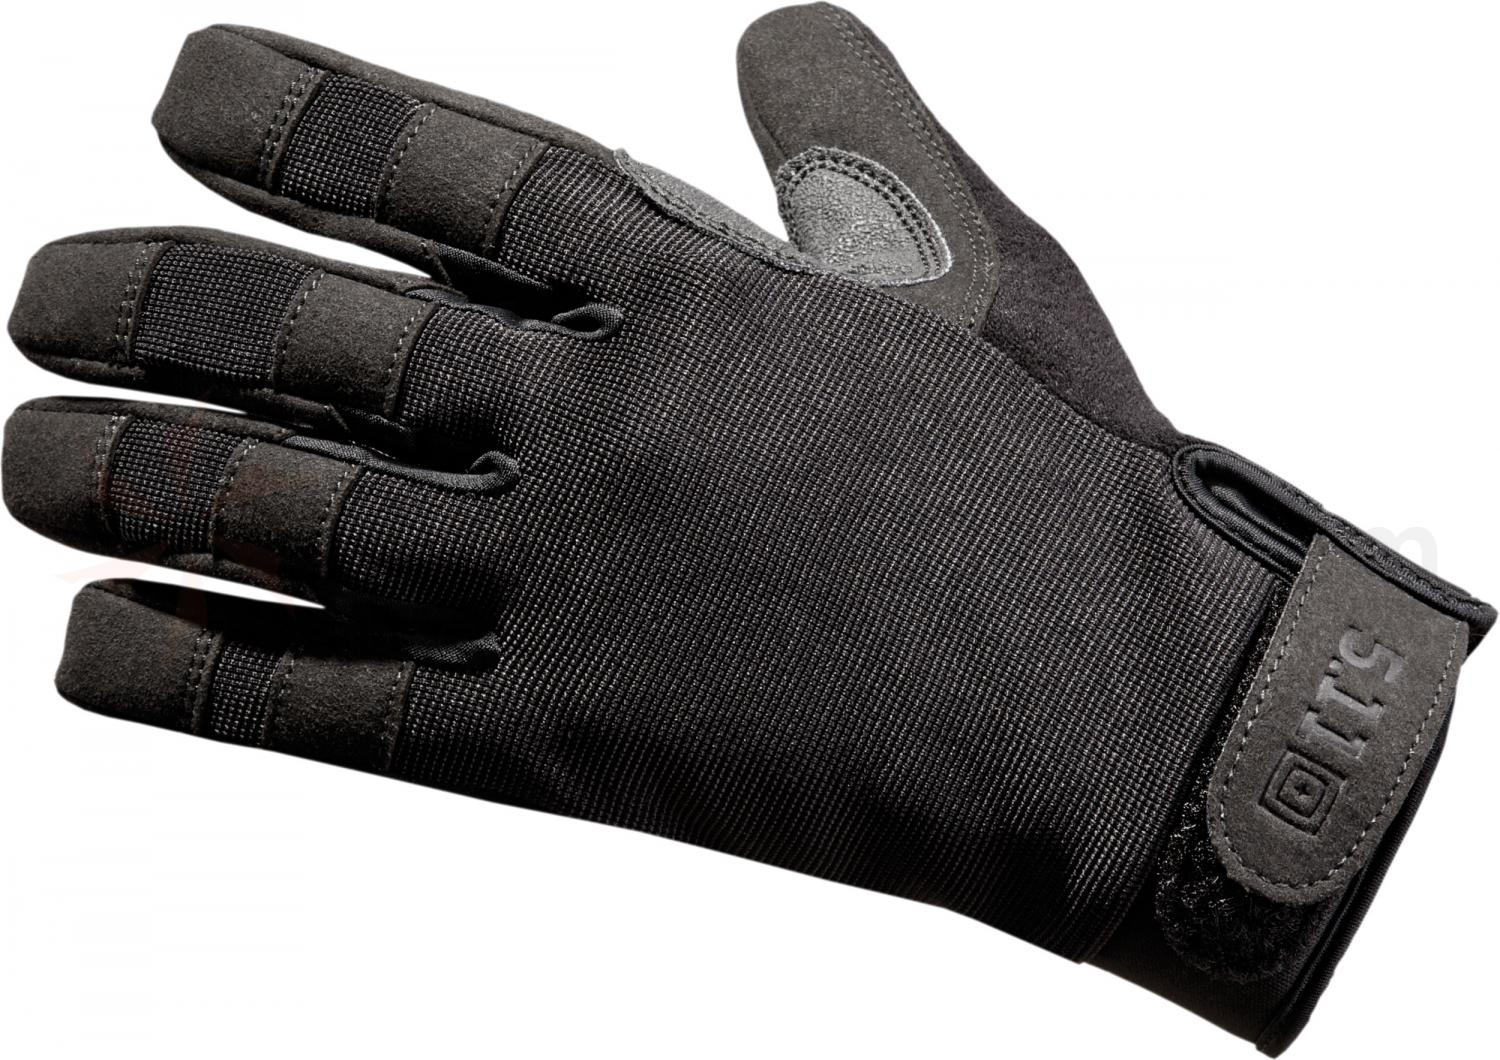 Black tactical gloves - 5 11 Tactical Tac A2 Gloves Black Small 59340